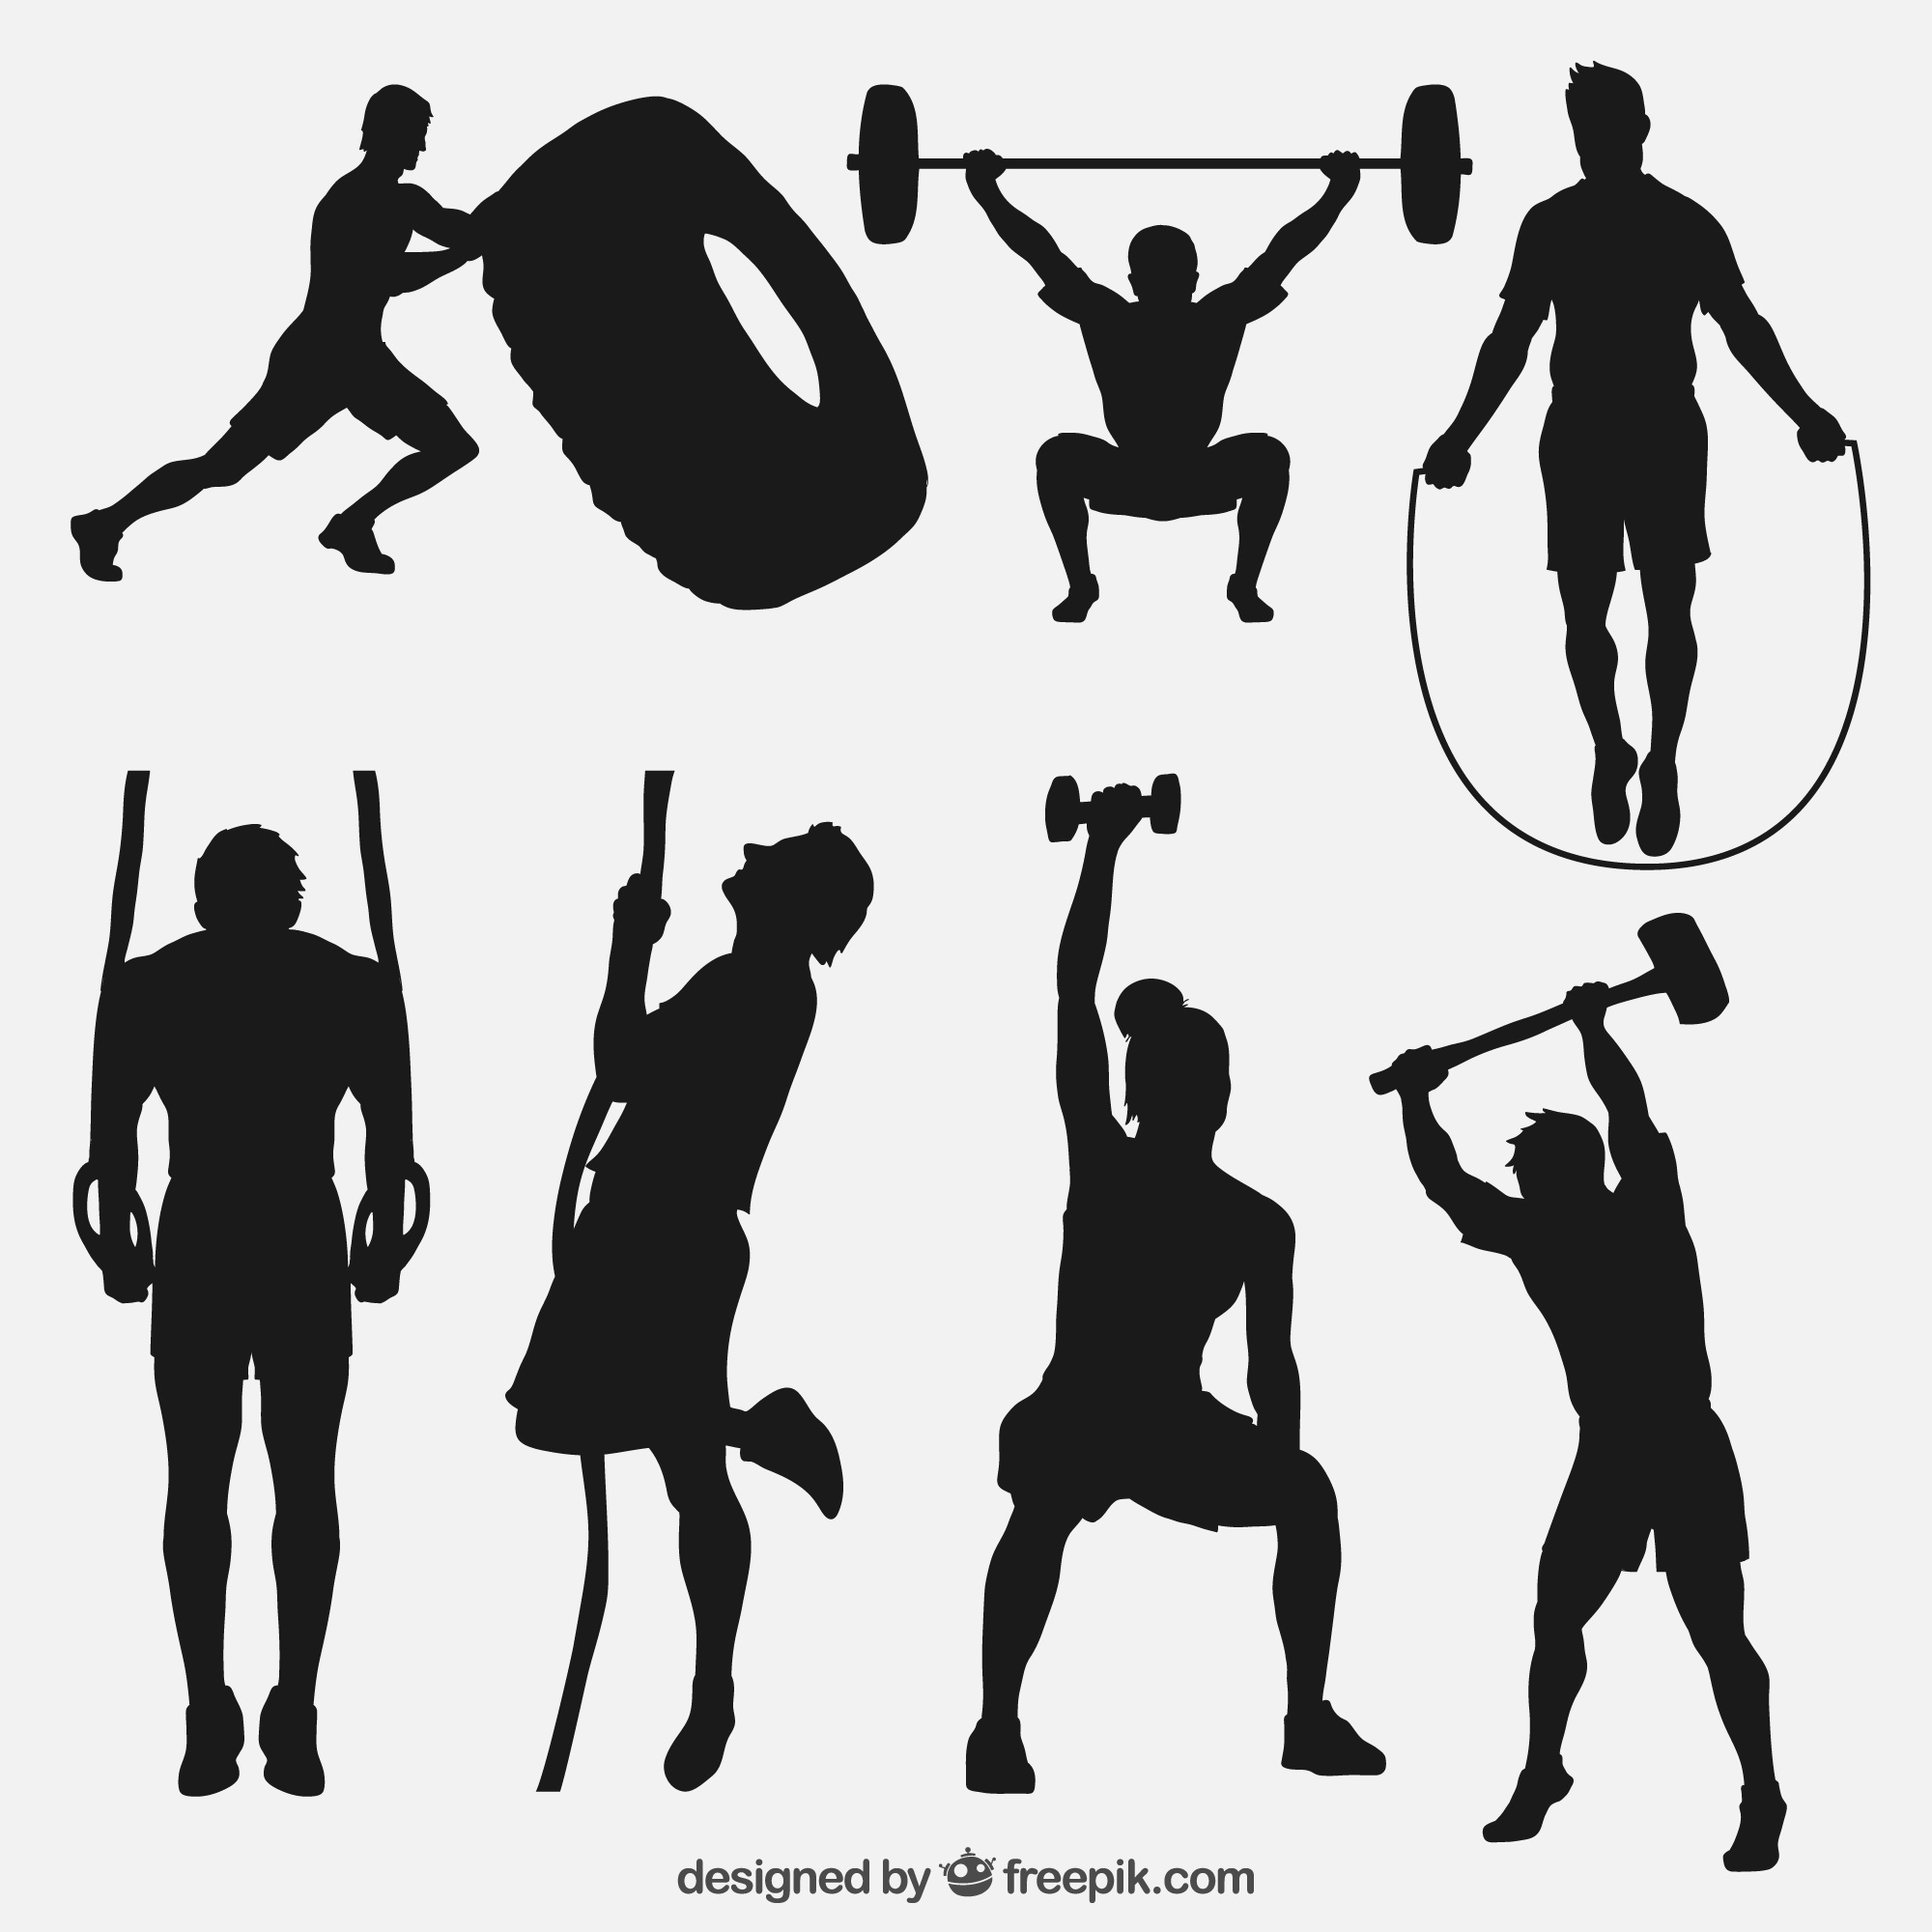 Sport silhouettes doing crossfit